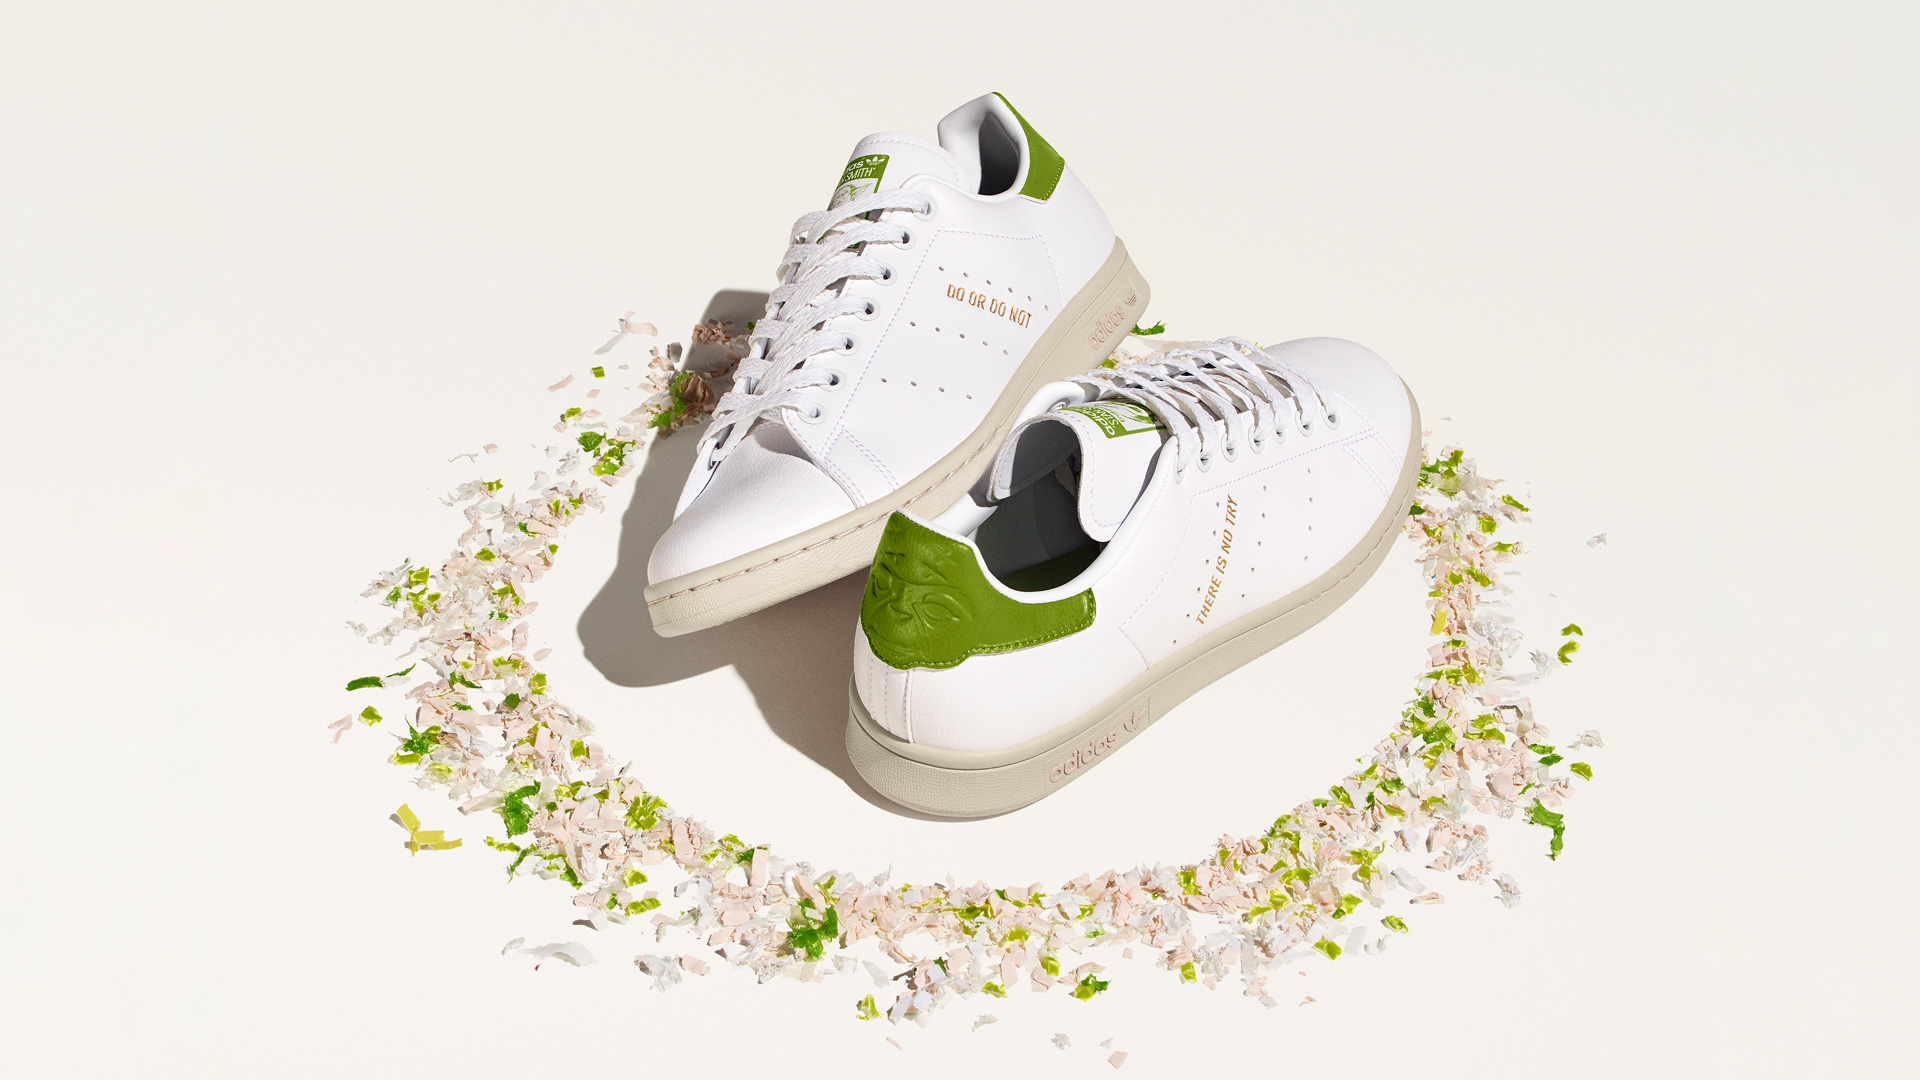 A pair of green and white sneakers surrounded by flower petals